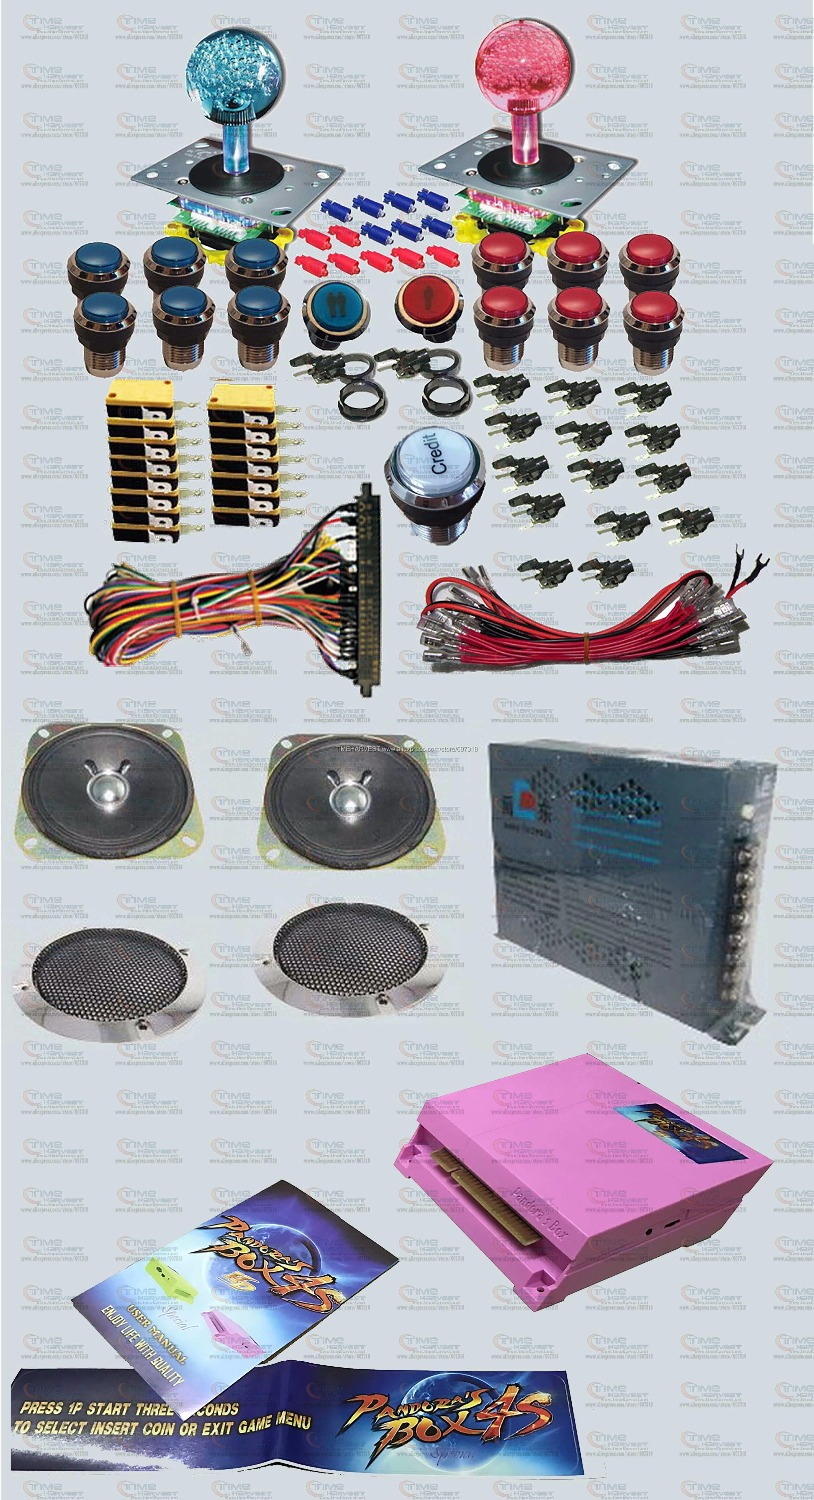 Arcade parts Bundles kit With HDMI Pandora Box 4S games LED illuminated Joystick Chrome LED button Microswitch Jamma Harness